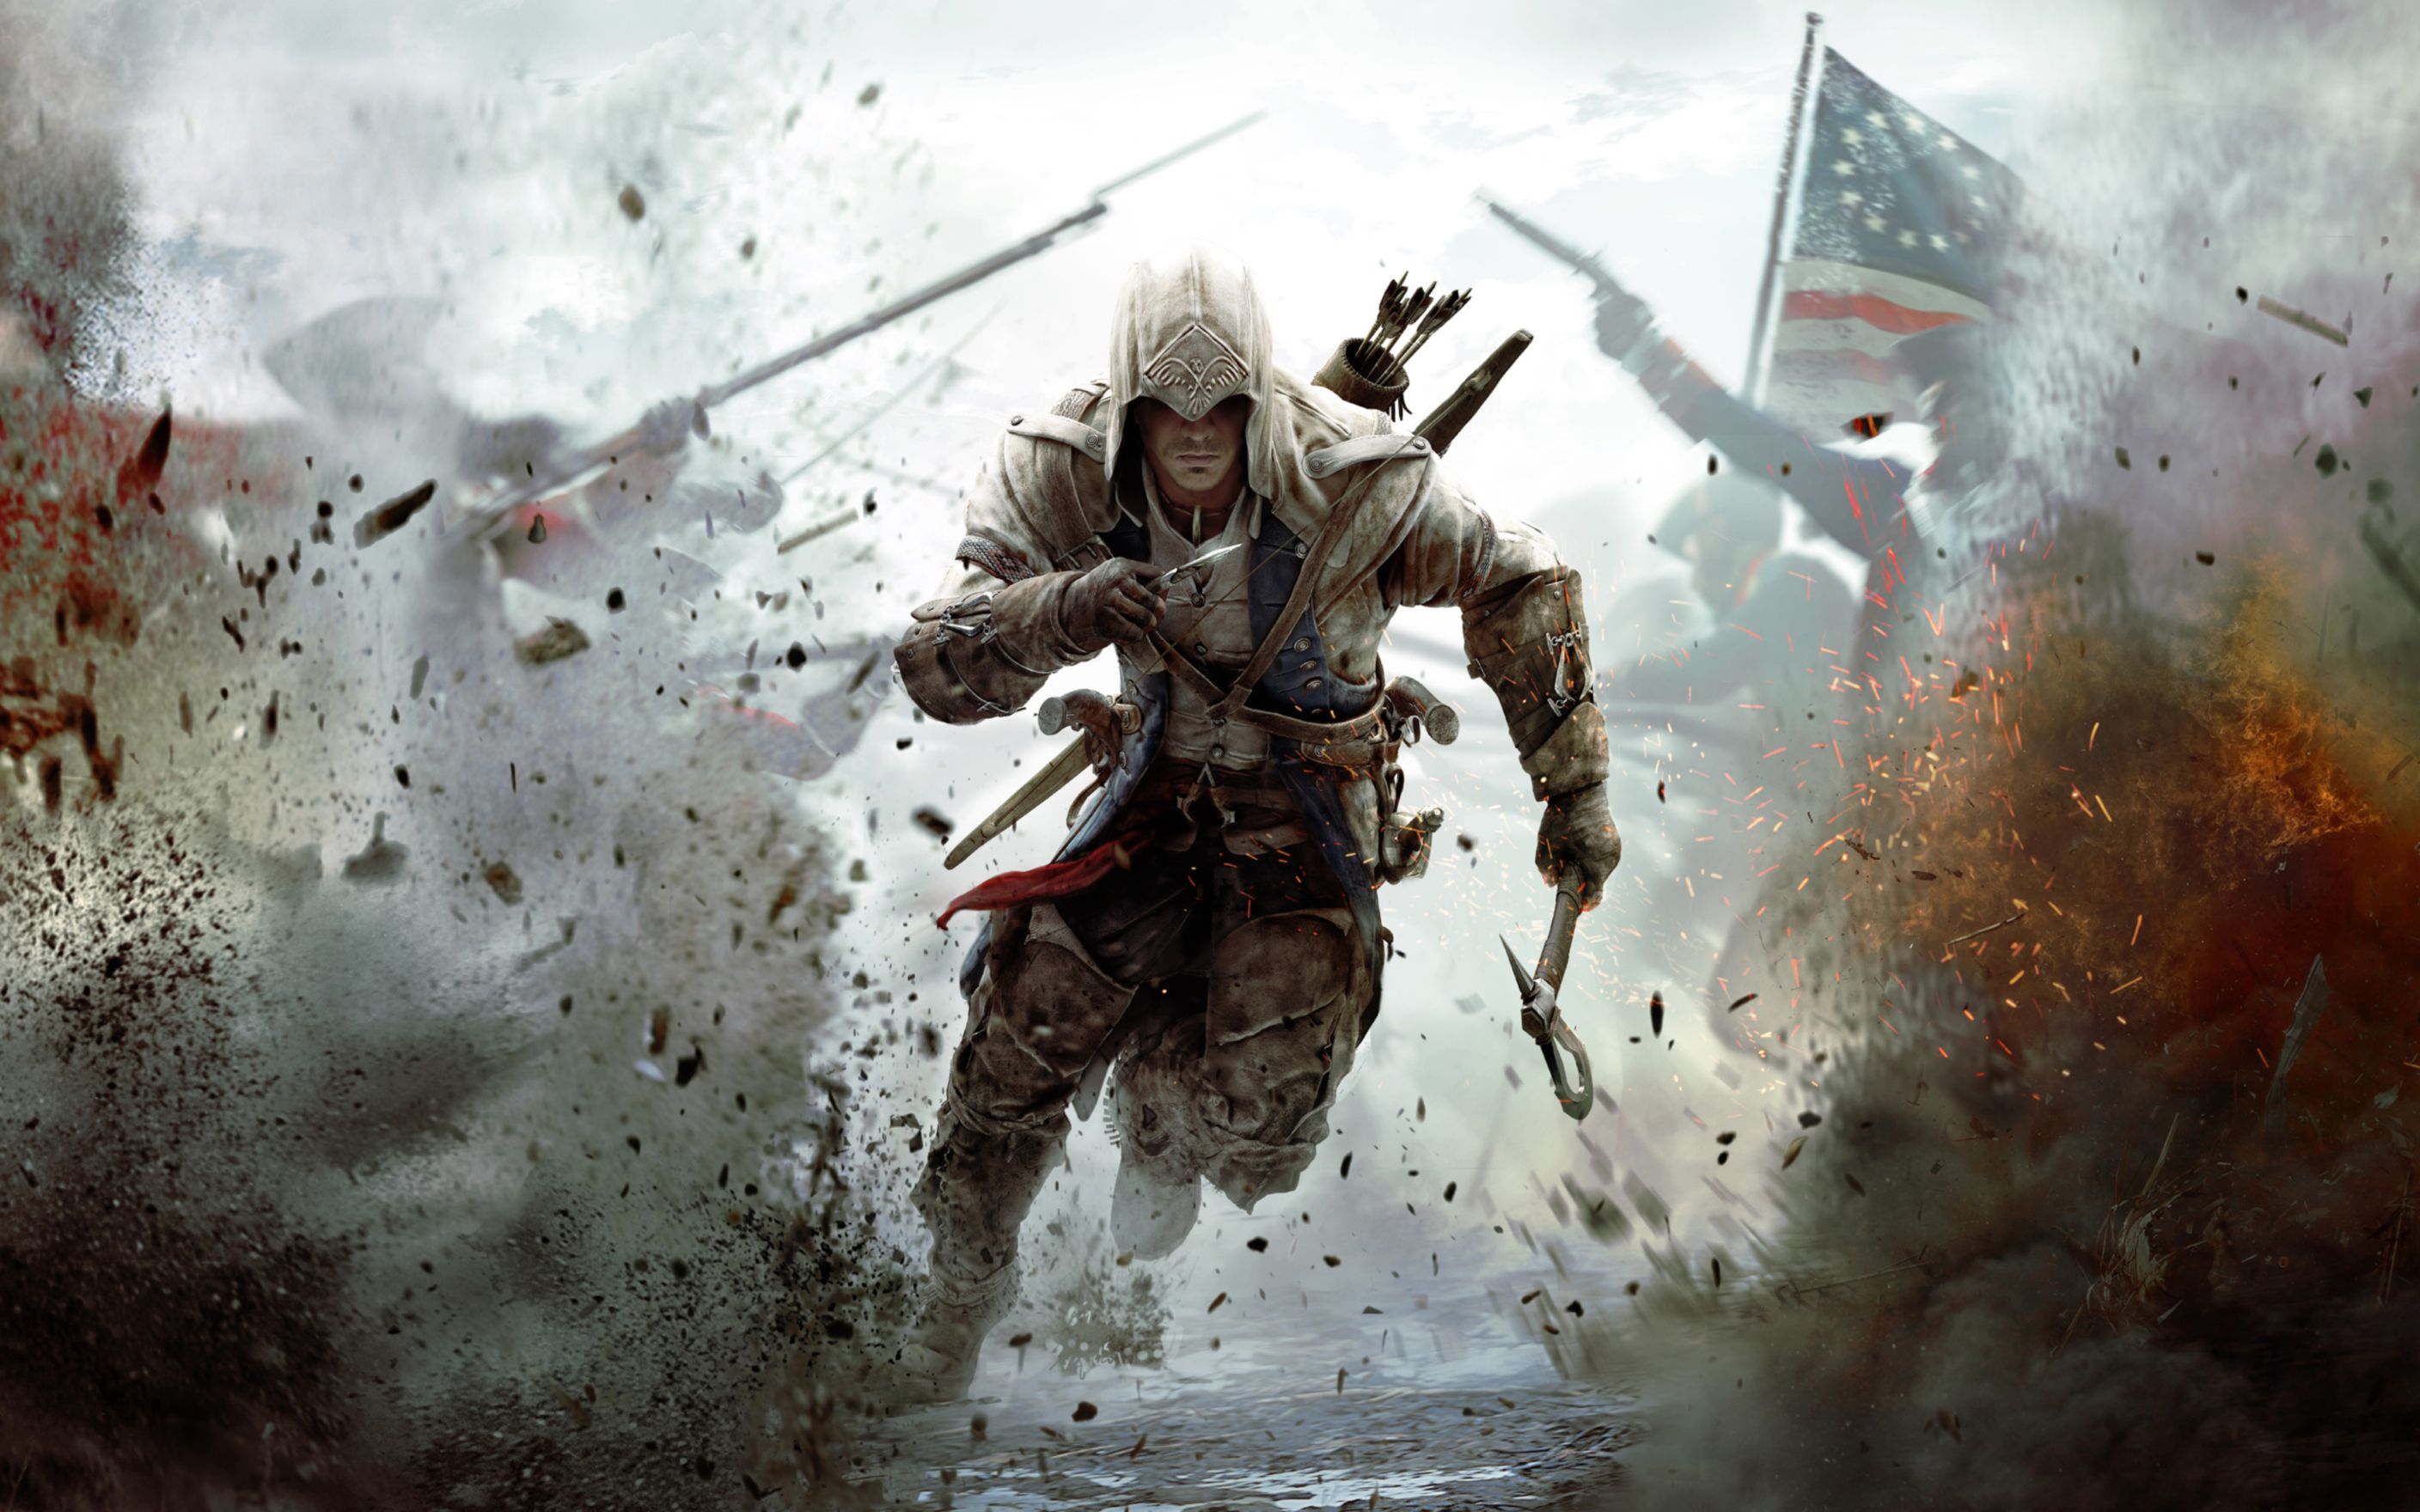 Download free HD Assassins Creed 3 2012 Game Wide Wallpaper, image